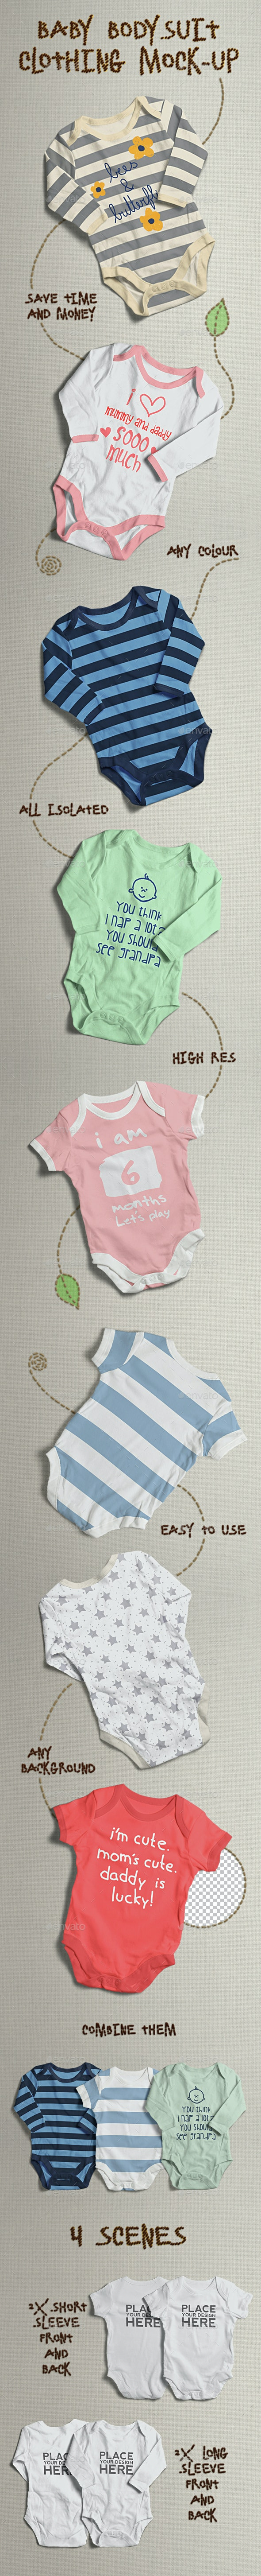 Baby Bodysuit Clothing Mock-up - Miscellaneous Apparel